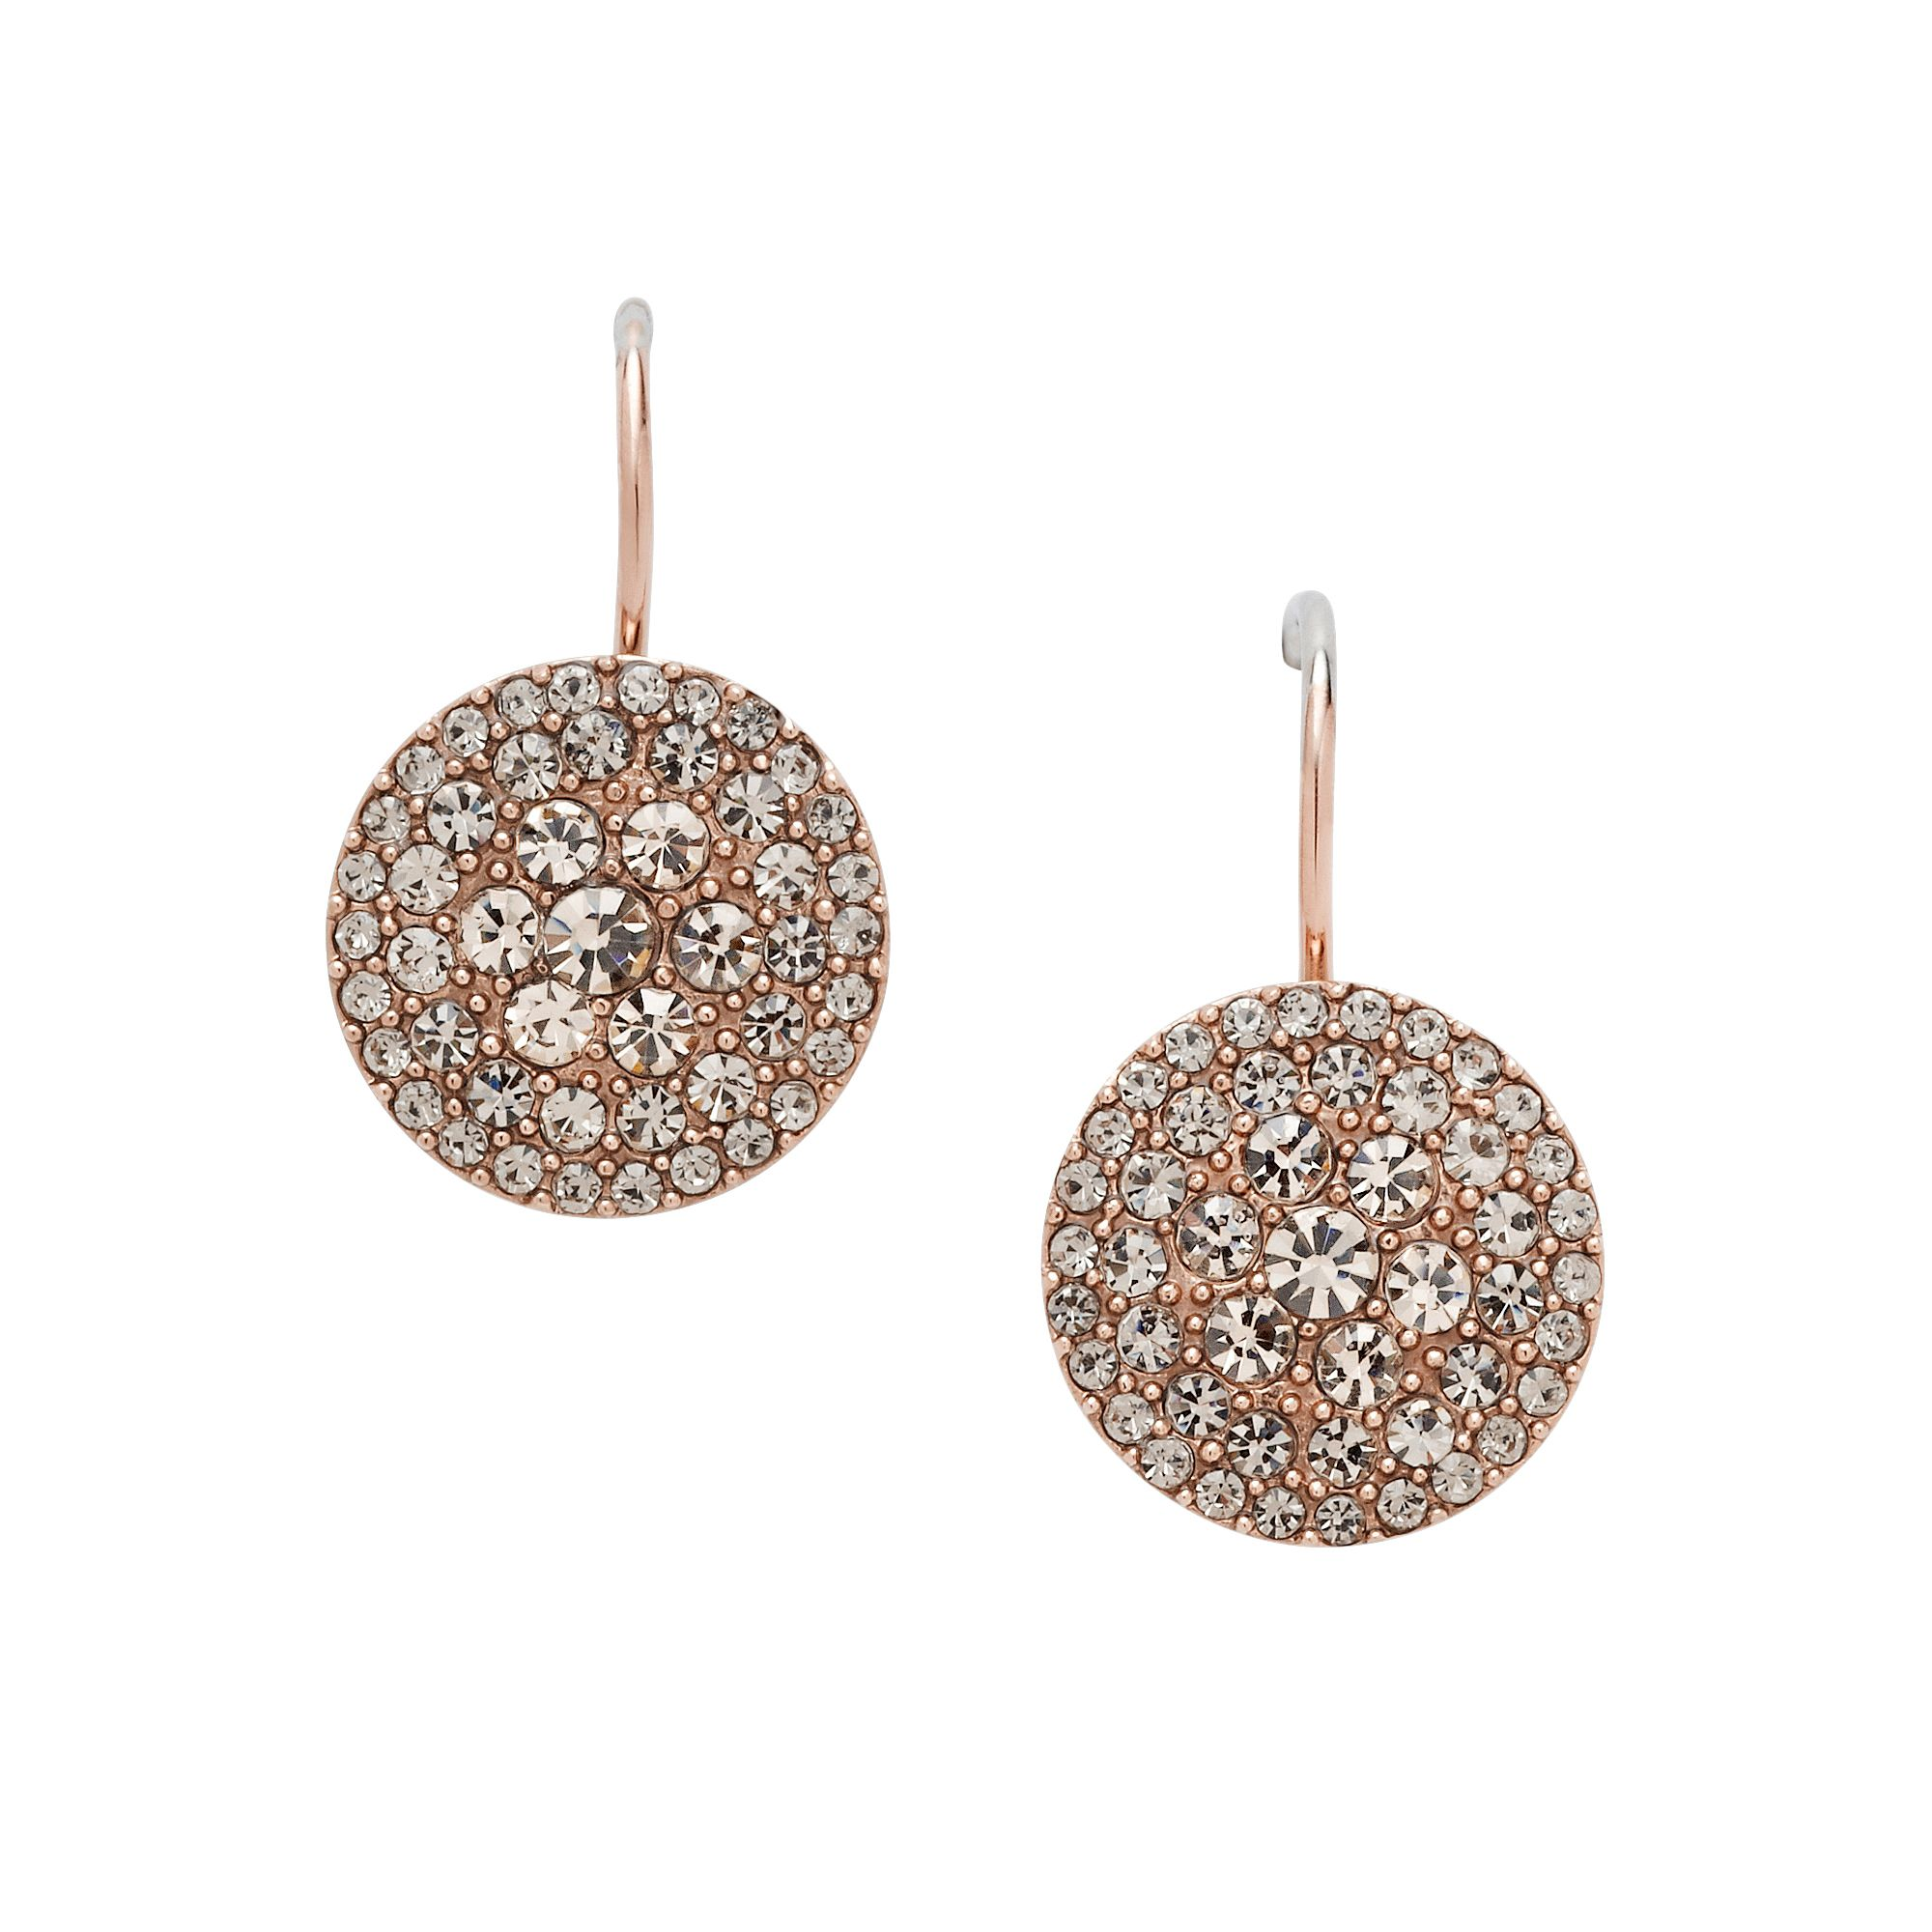 Jf00135791 Ladies rose iconic glitz earrings